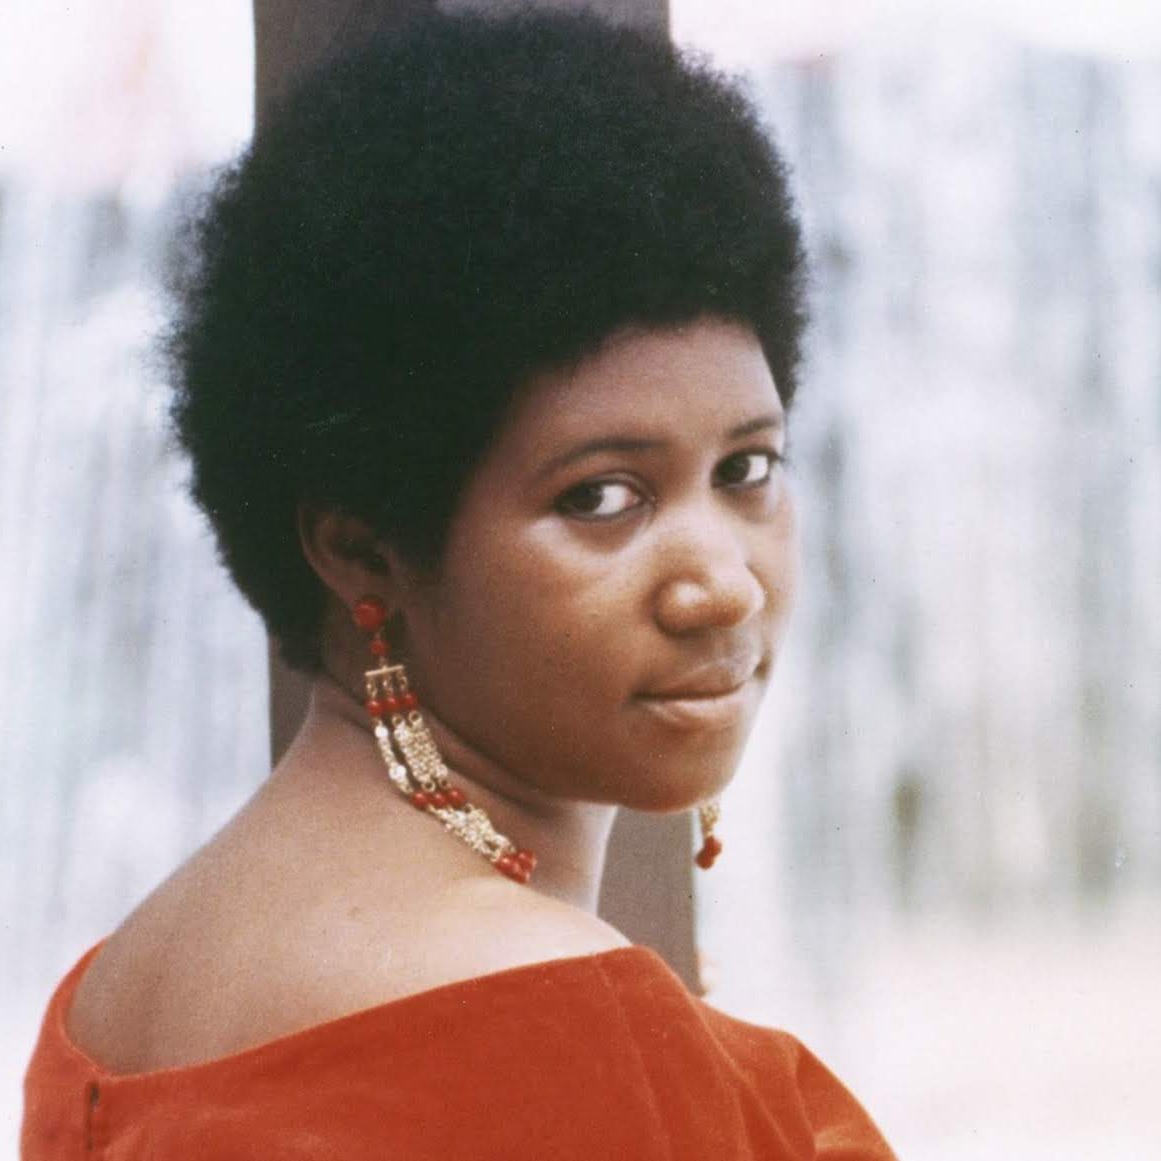 Aretha Franklin awarded 2019 Pulitzer Prize for contributions to music, culture